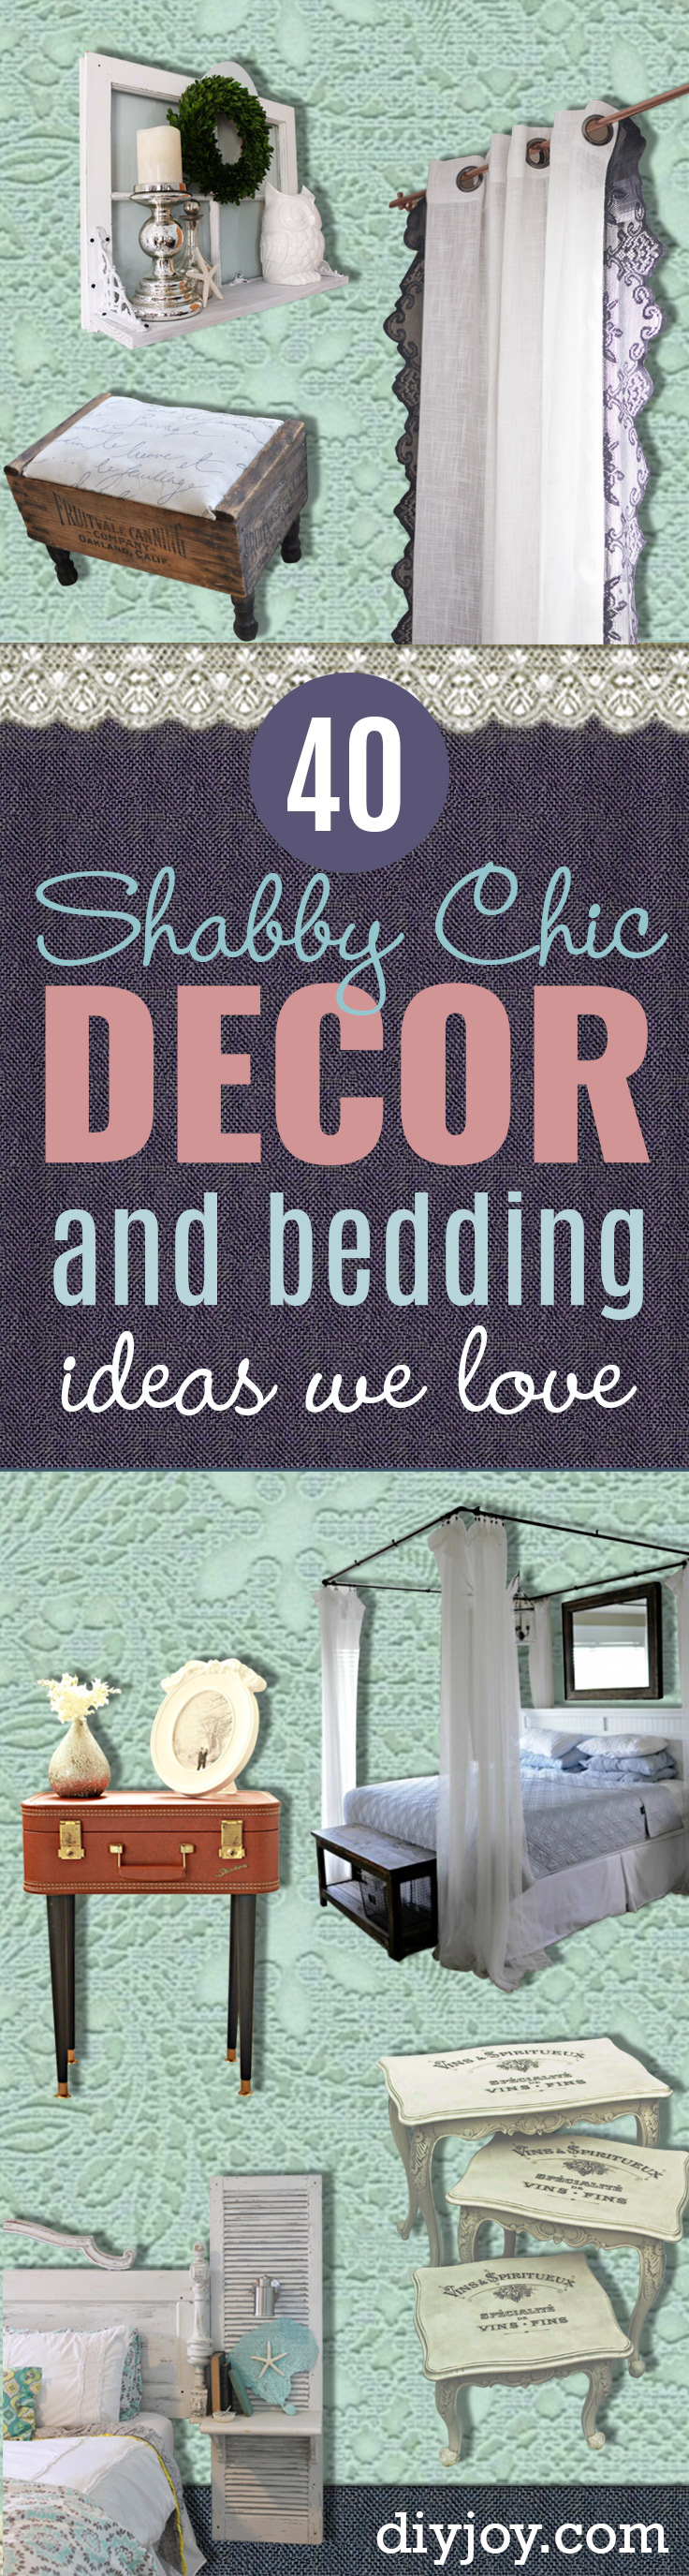 Shabby Chic Decor and Bedding Ideas - Rustic, Country French and Romantic Vintage Bedroom, Living Room and Kitchen Country Cottage Furniture and Home Decor Ideas. Step by Step Tutorials and Instructions http://diyjoy.com/diy-shabby-chic-decor-bedding